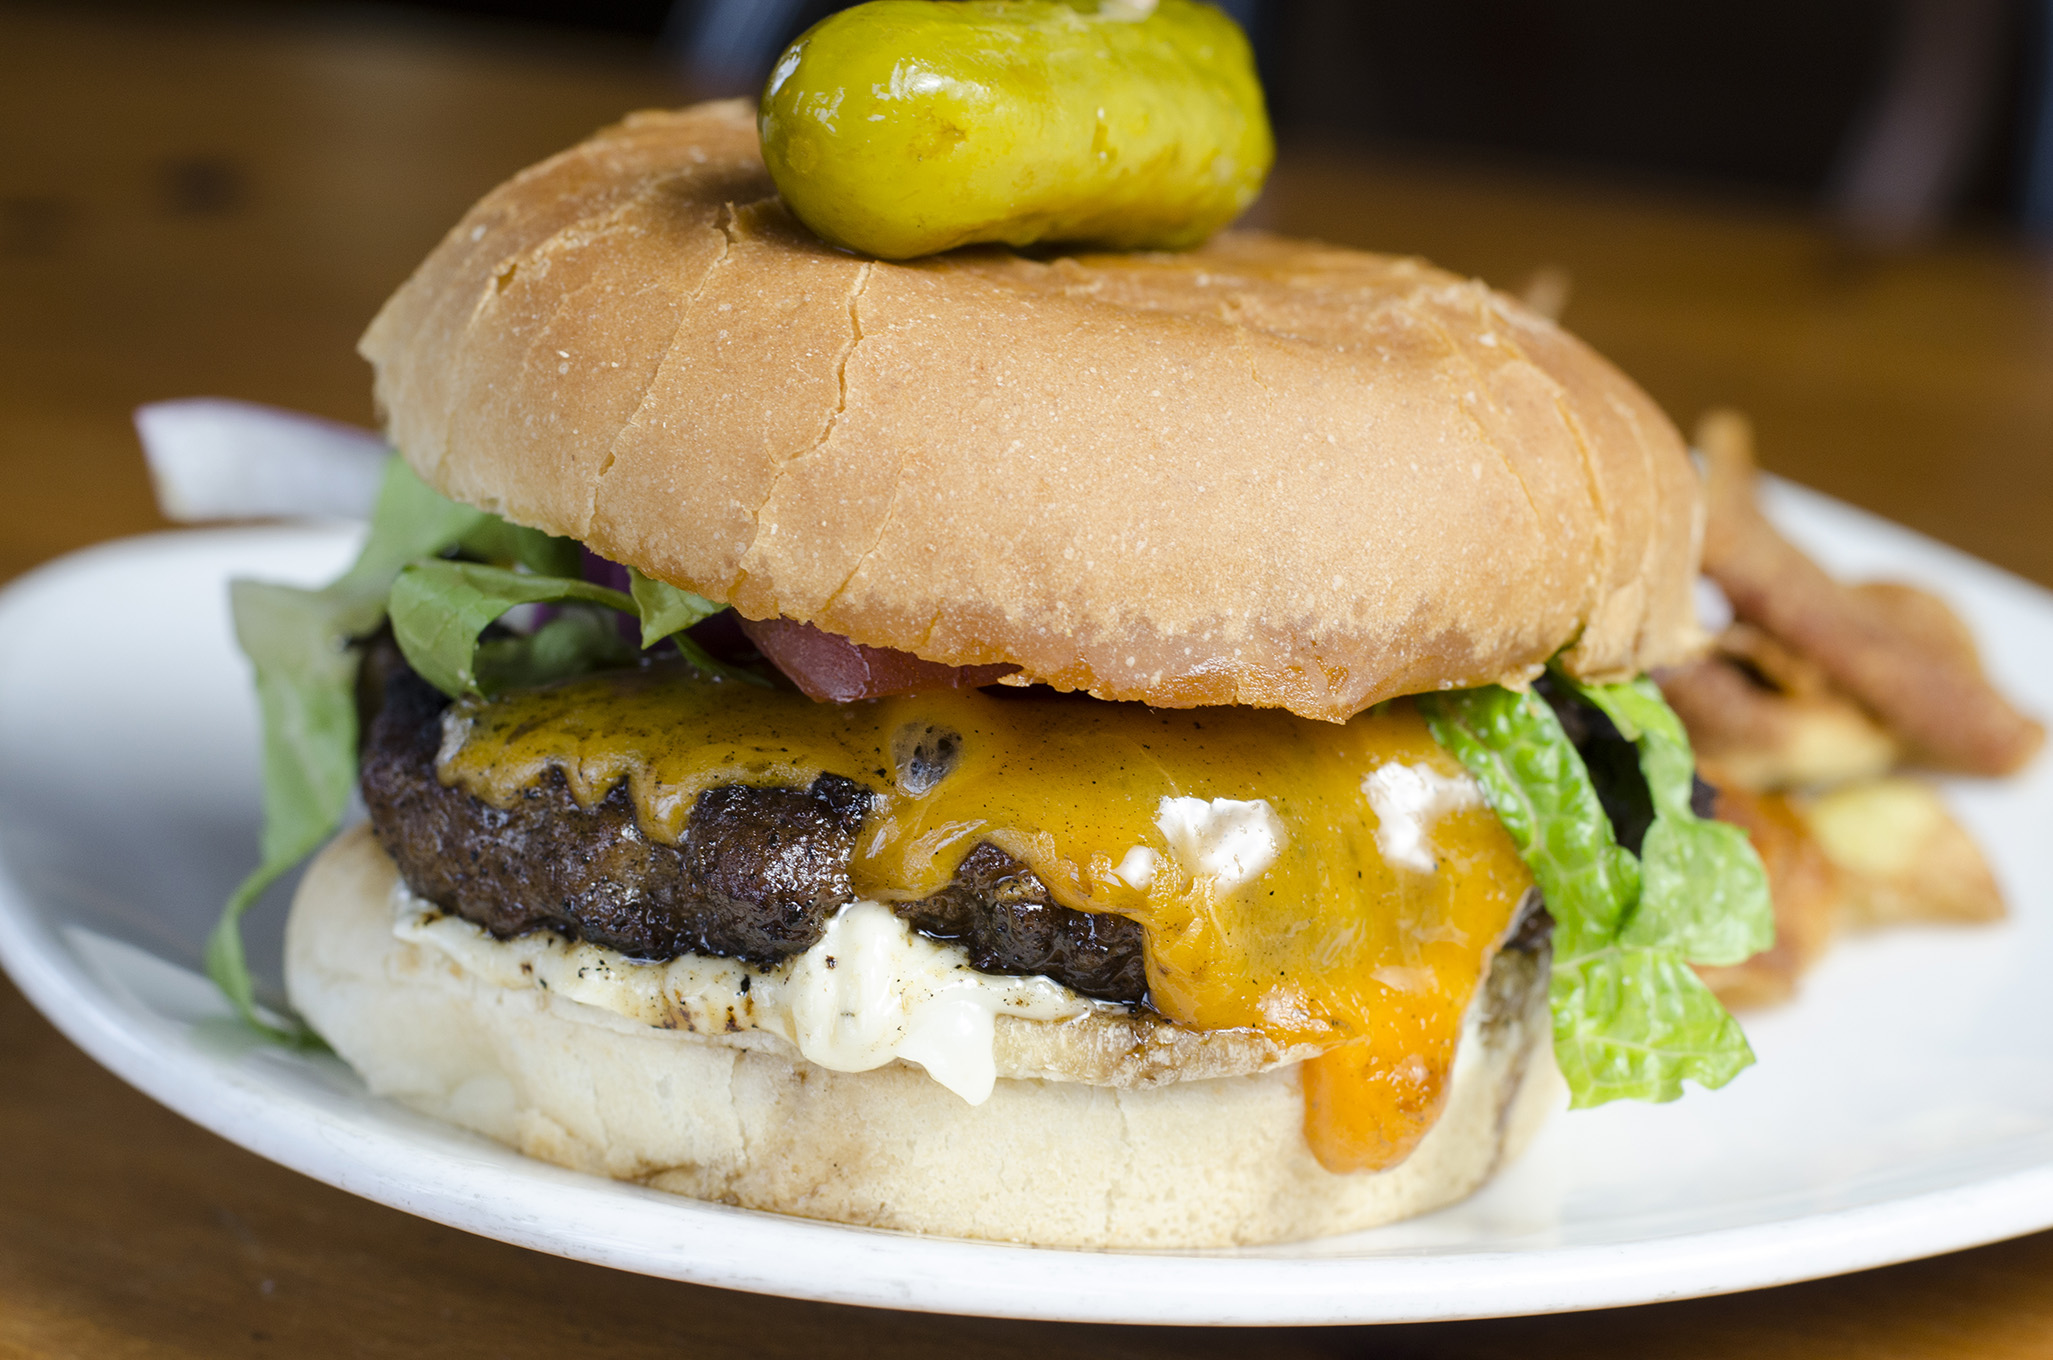 A classic cheeseburger at Rino's Kitchen in Windsor, Ontario.